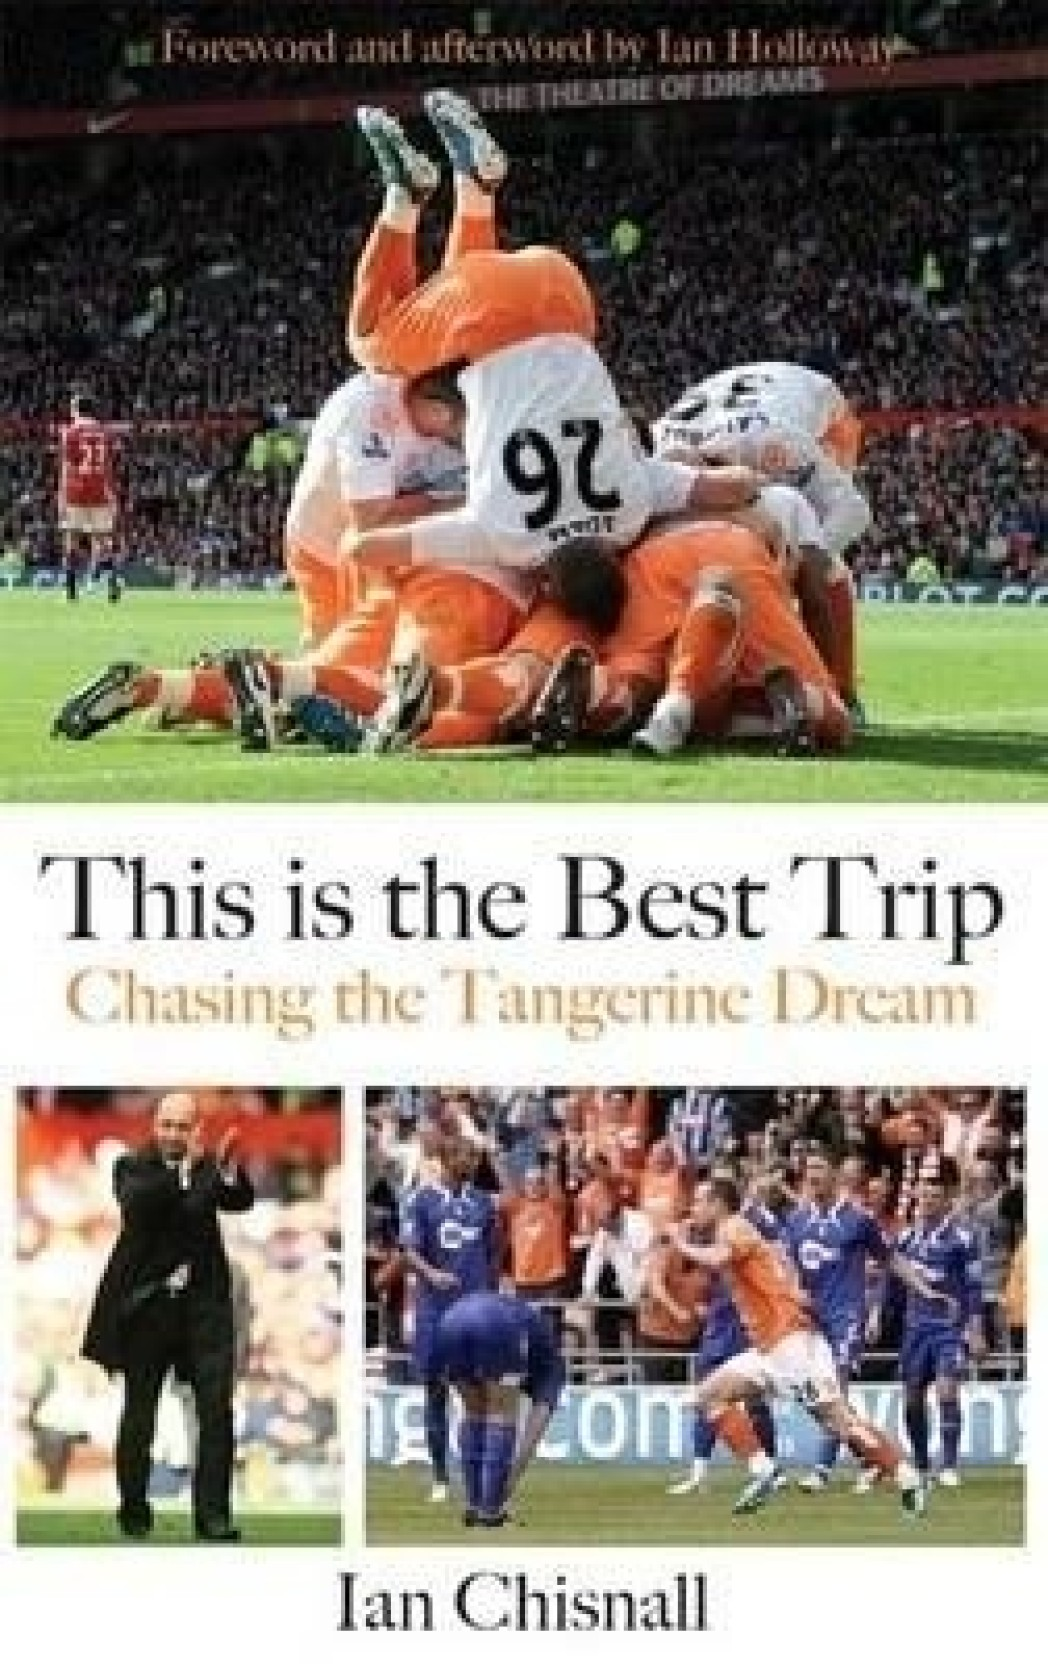 This Is the Best Trip: Chasing the Tangerine Dream: Buy This